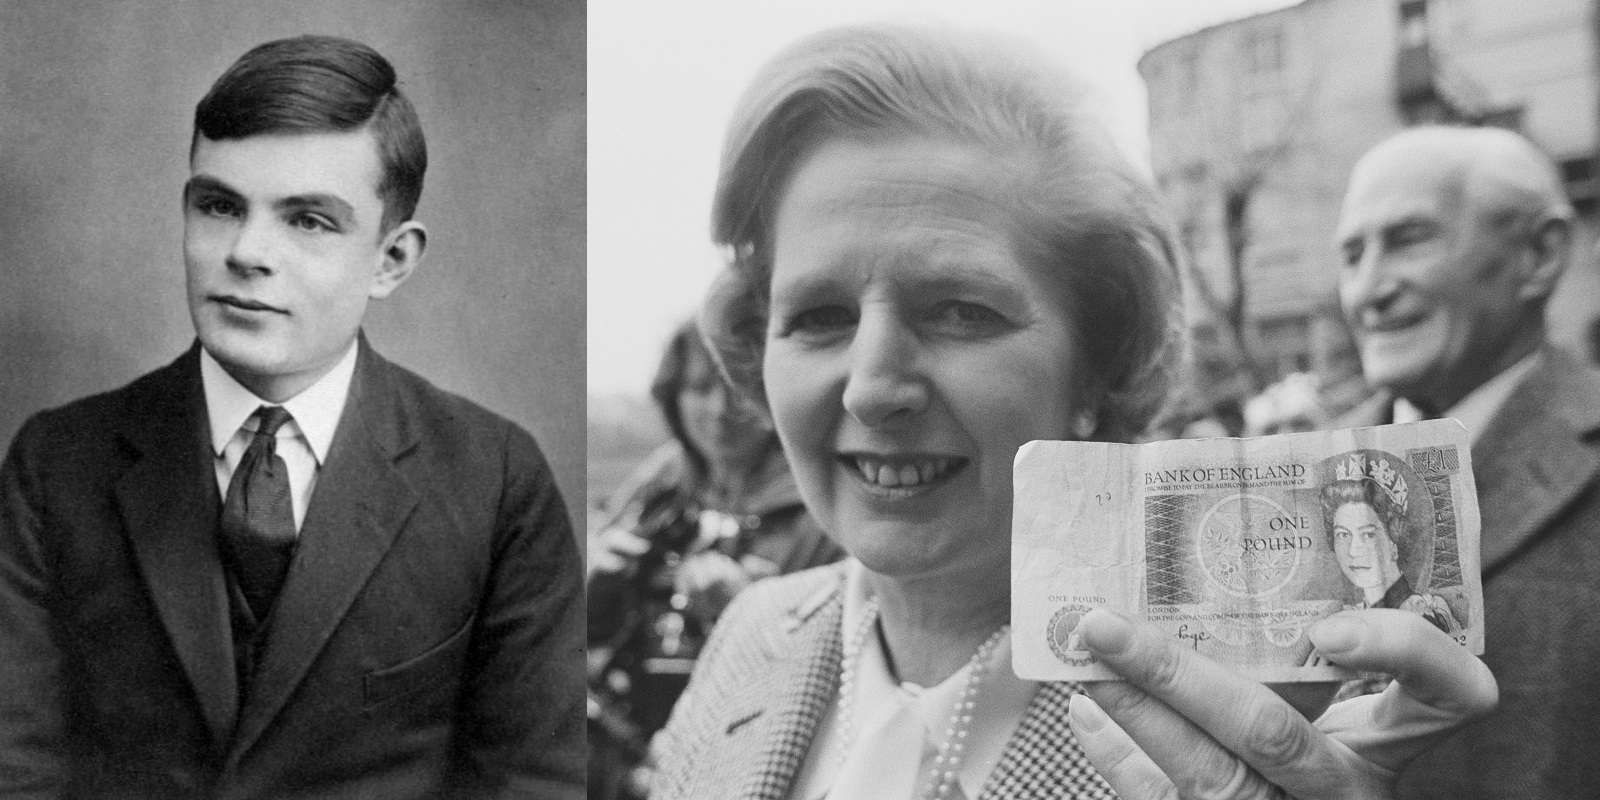 Alan Turing faces Margaret Thatcher in £50 note battle